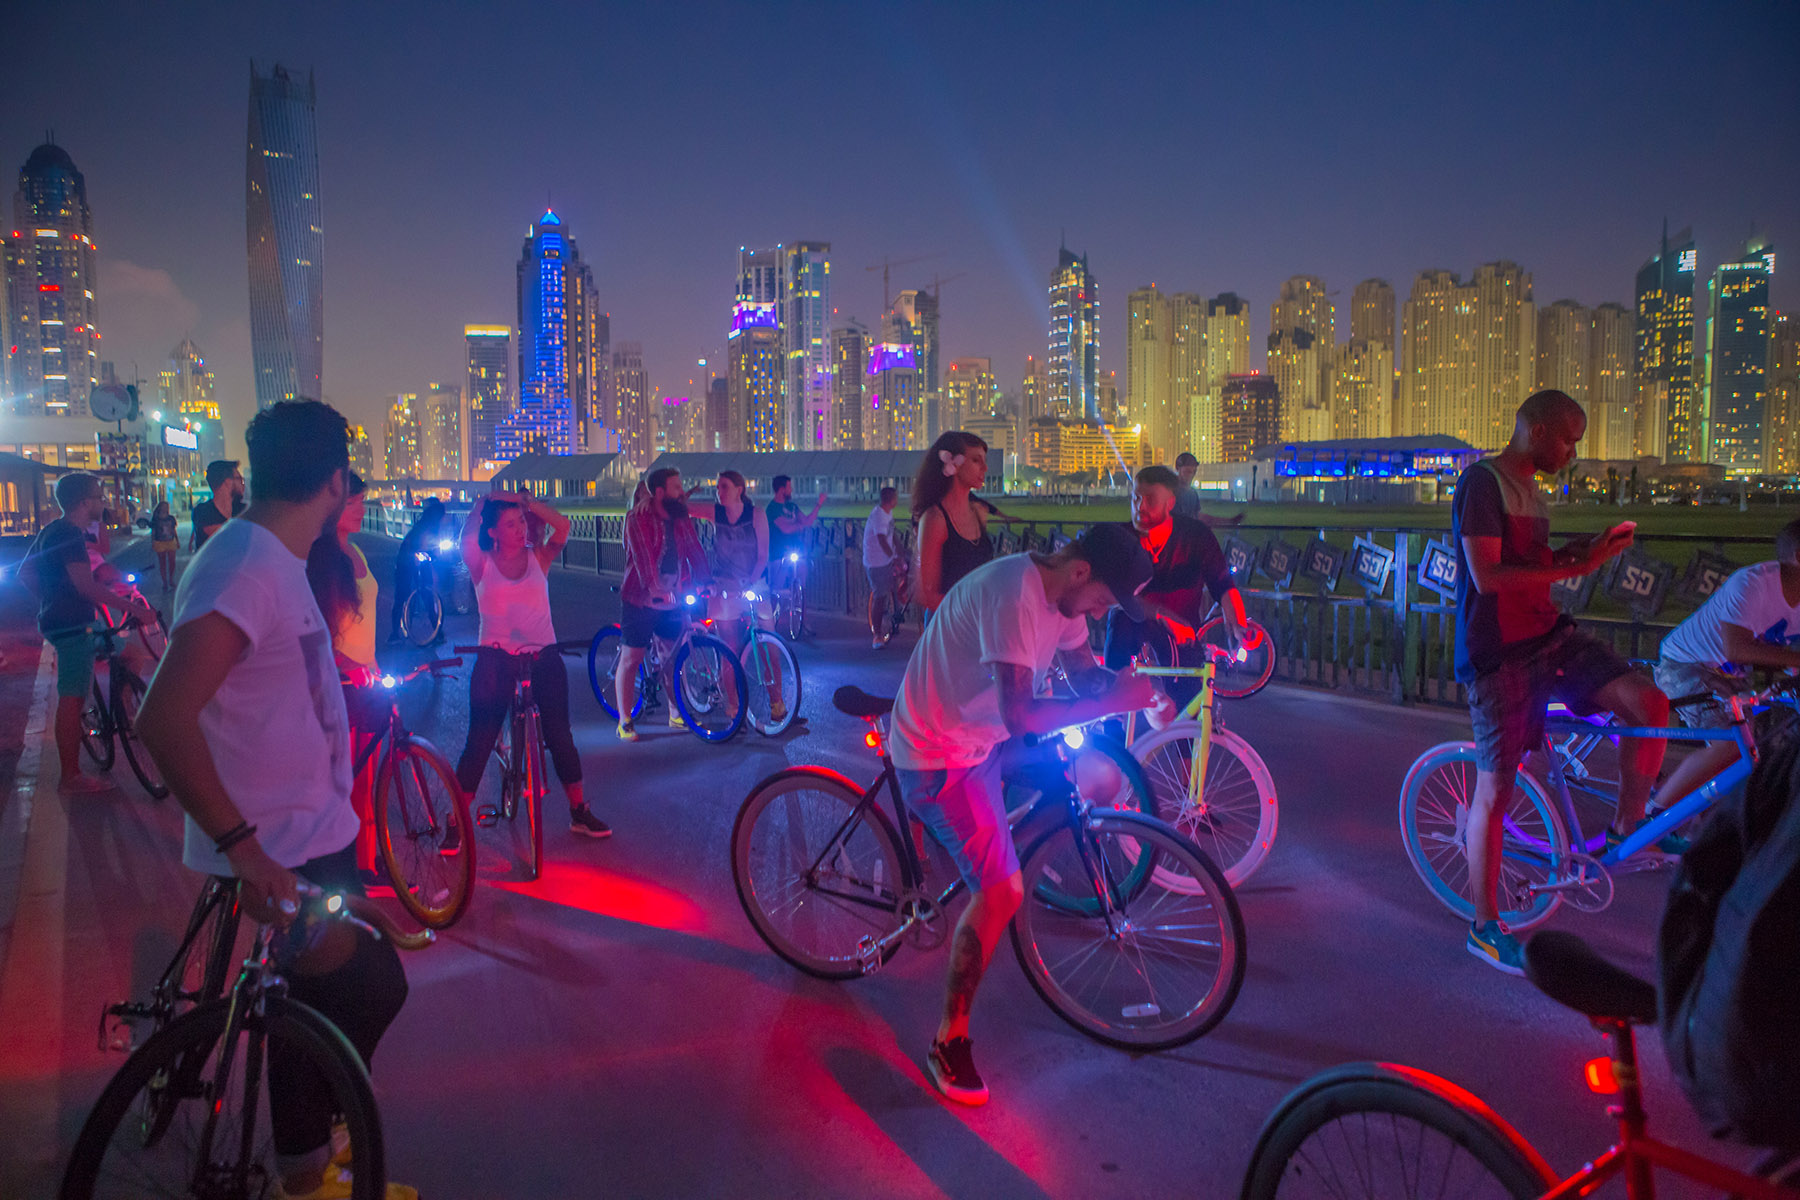 Influencers ready for the bike ride at the PUMA event by Loesje Kessels Fashion Photographer Dubai